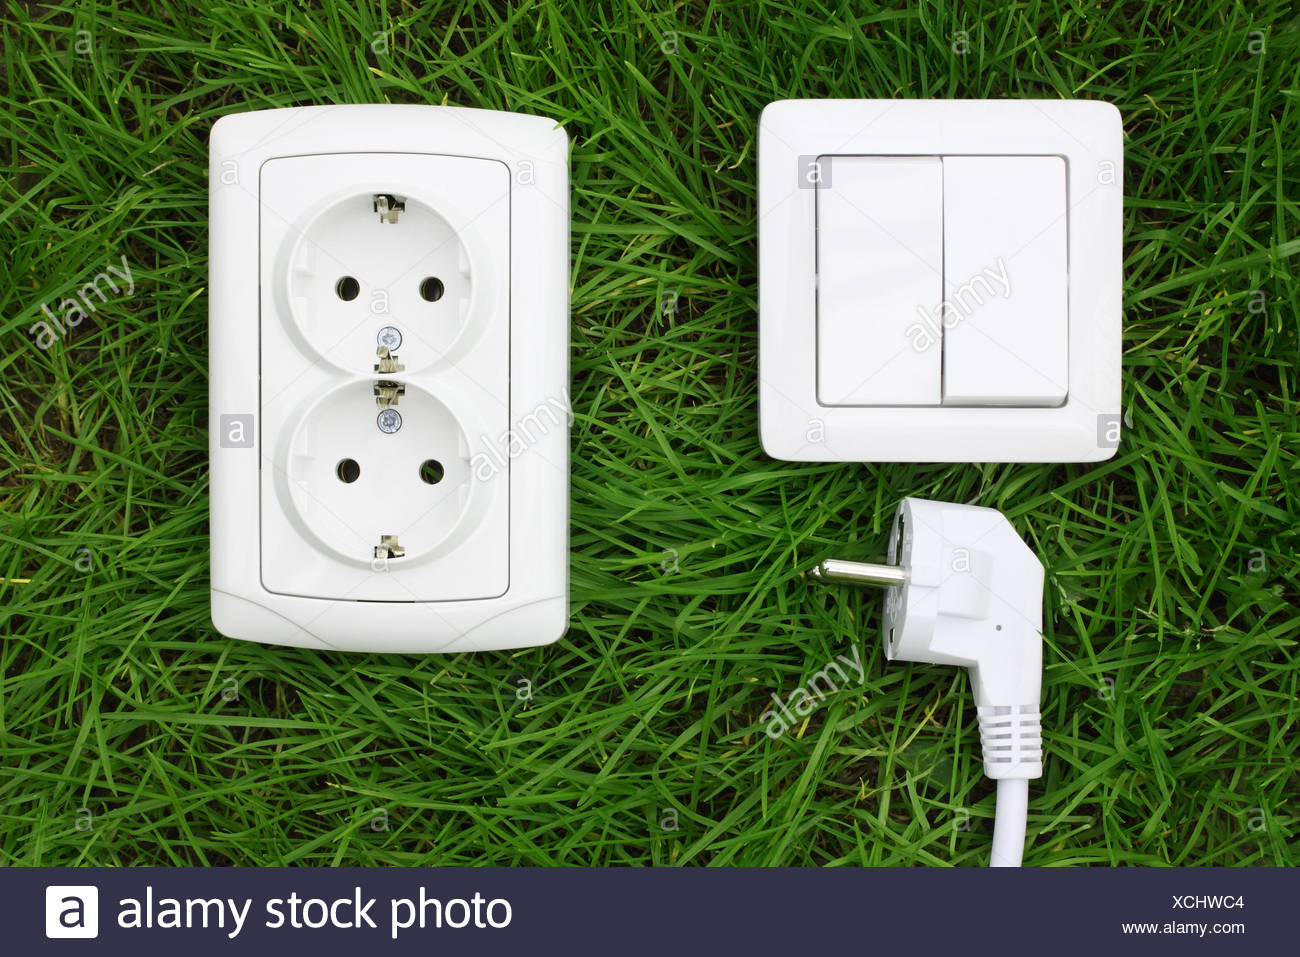 power receptacle and light switch on a green grass - Stock Image